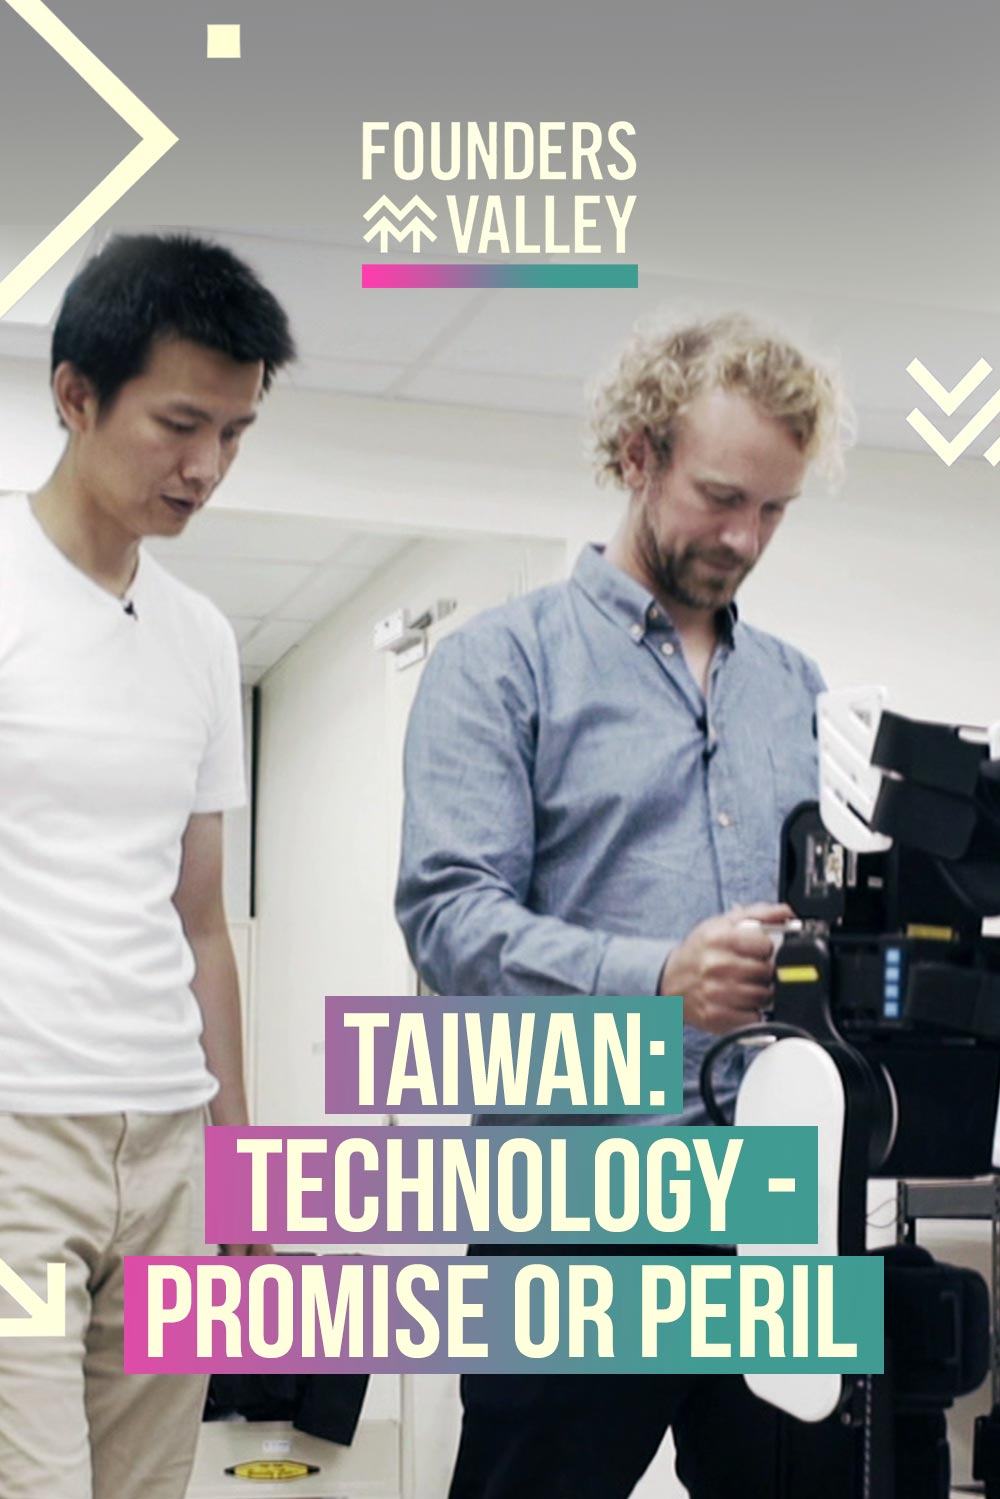 Founders' Valley: Technology - Promise or Peril, Taiwan